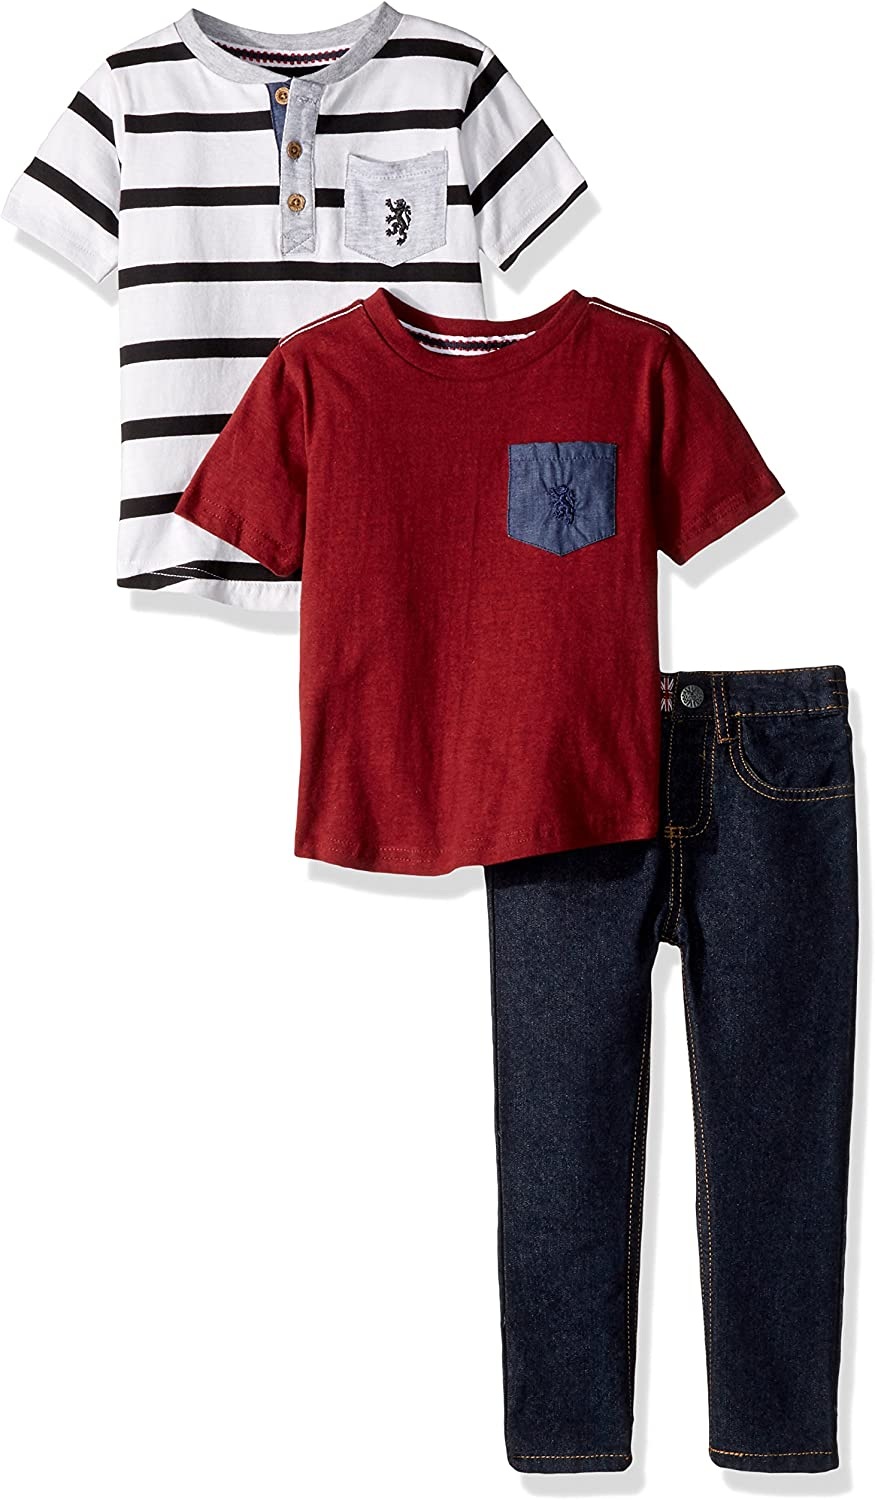 English Laundry Boys' T-Shirt and Pant 3 Piece Set (More Styles Available)